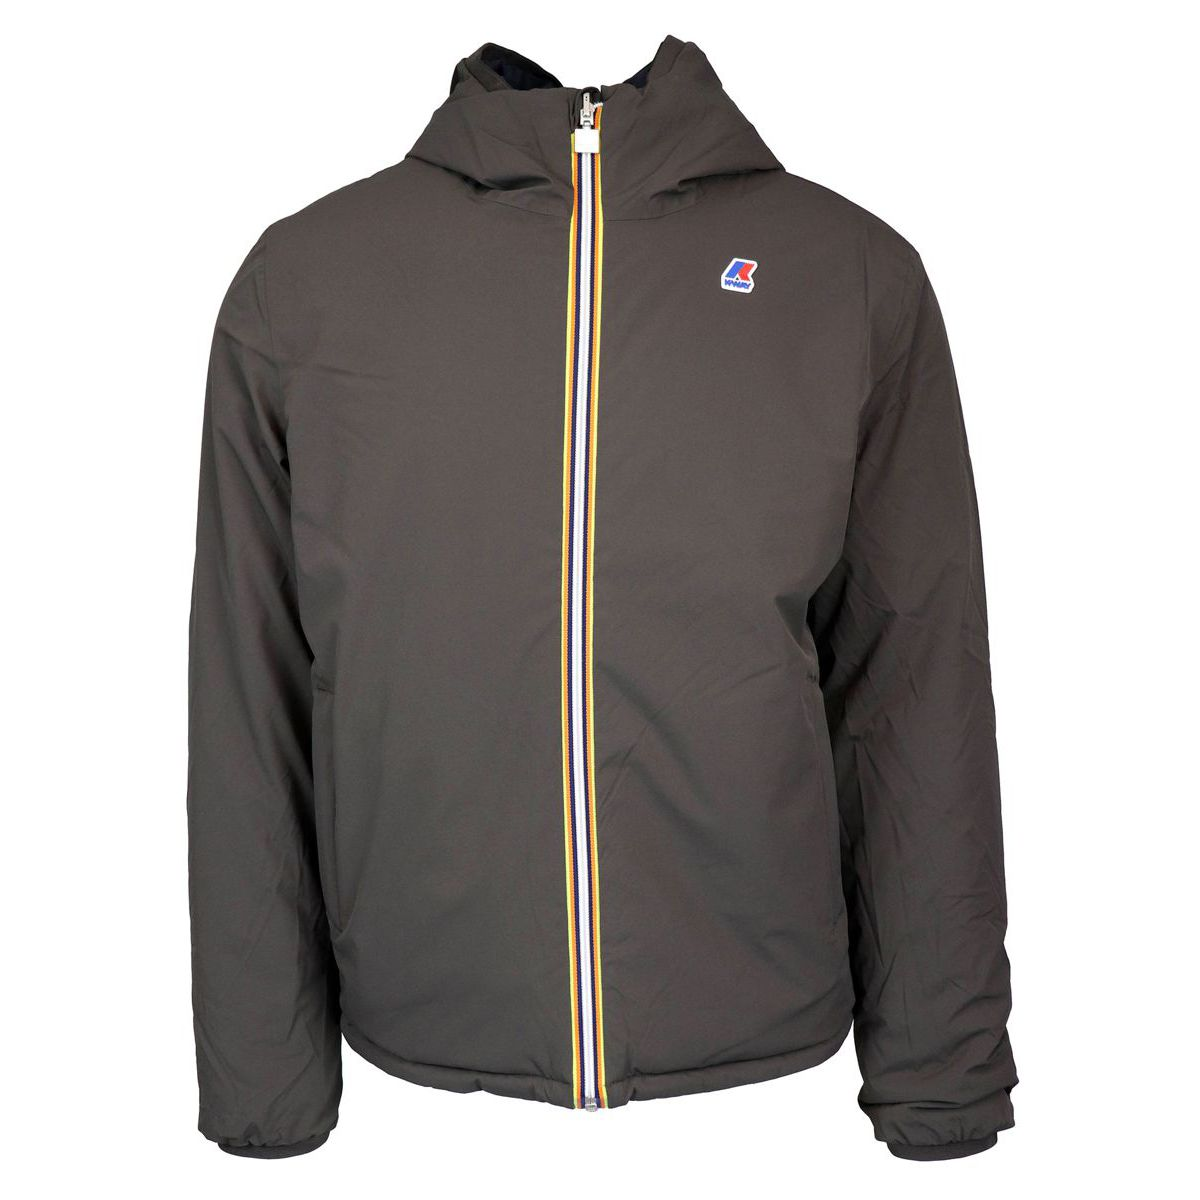 Jacques Warm Double face nylon jacket Navy brown K-Way